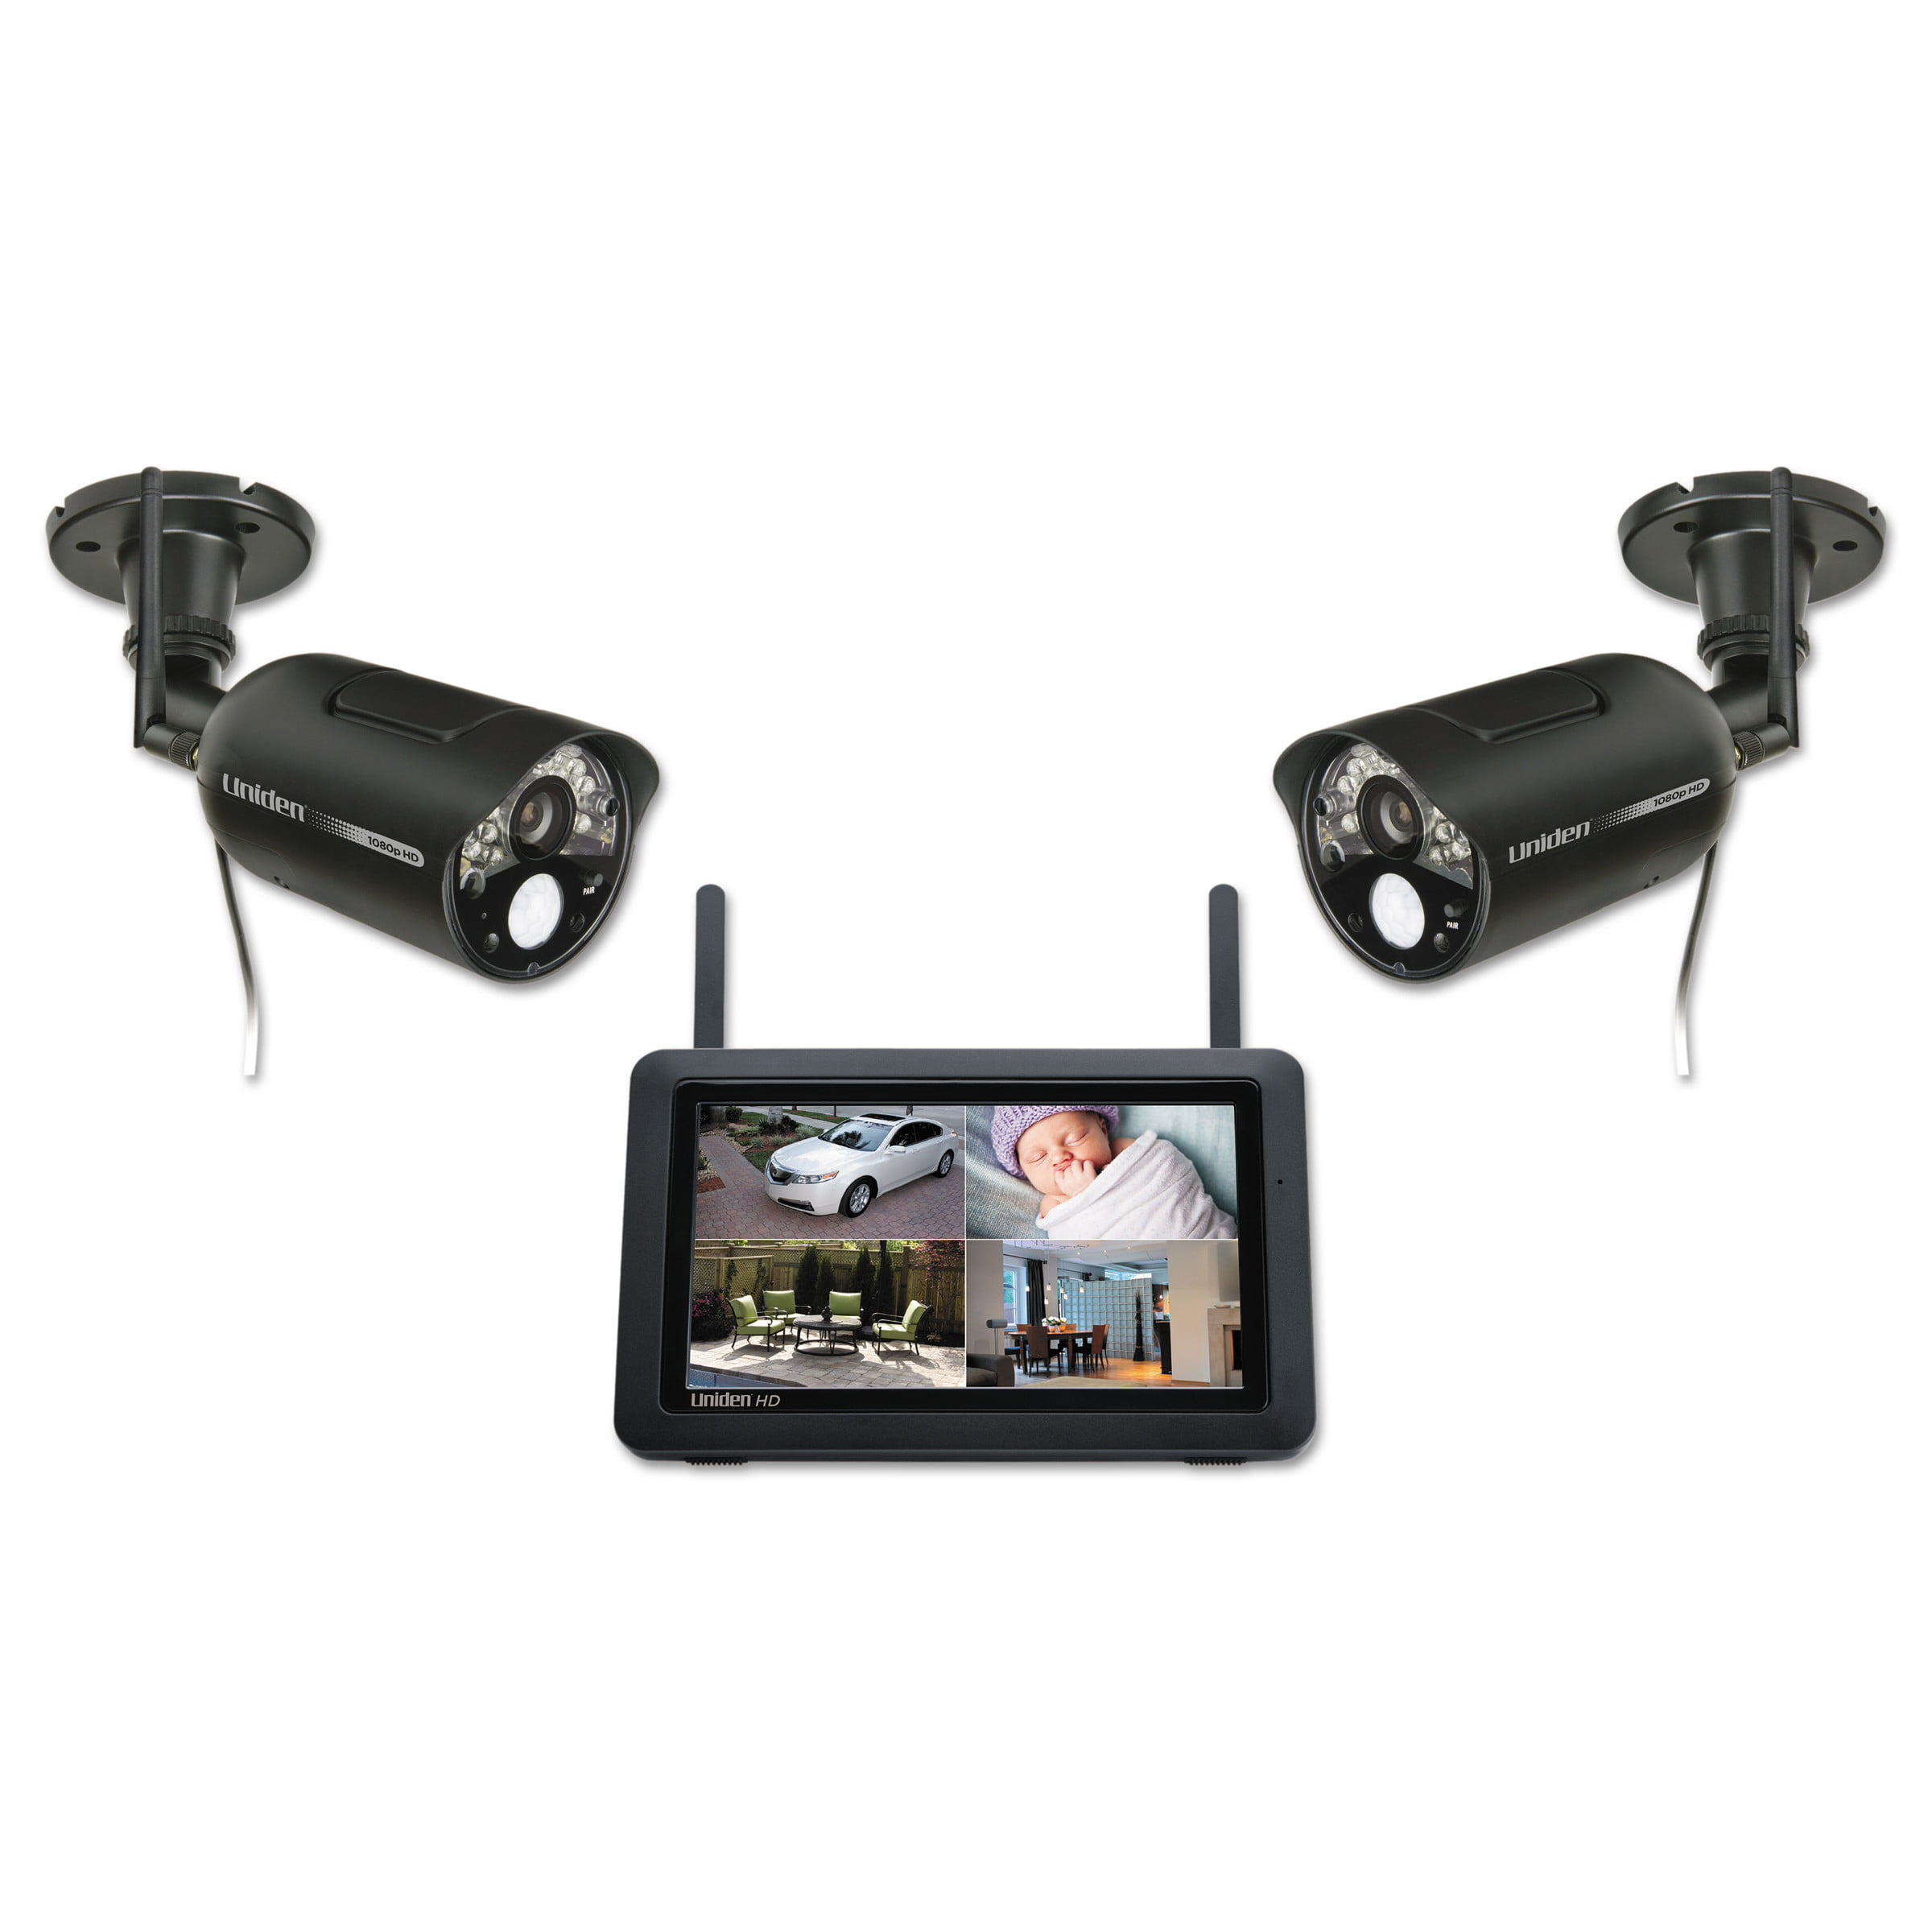 Uniden UDR777HD 1080p Home Security and Video Monitoring System with Two Cameras by Uniden